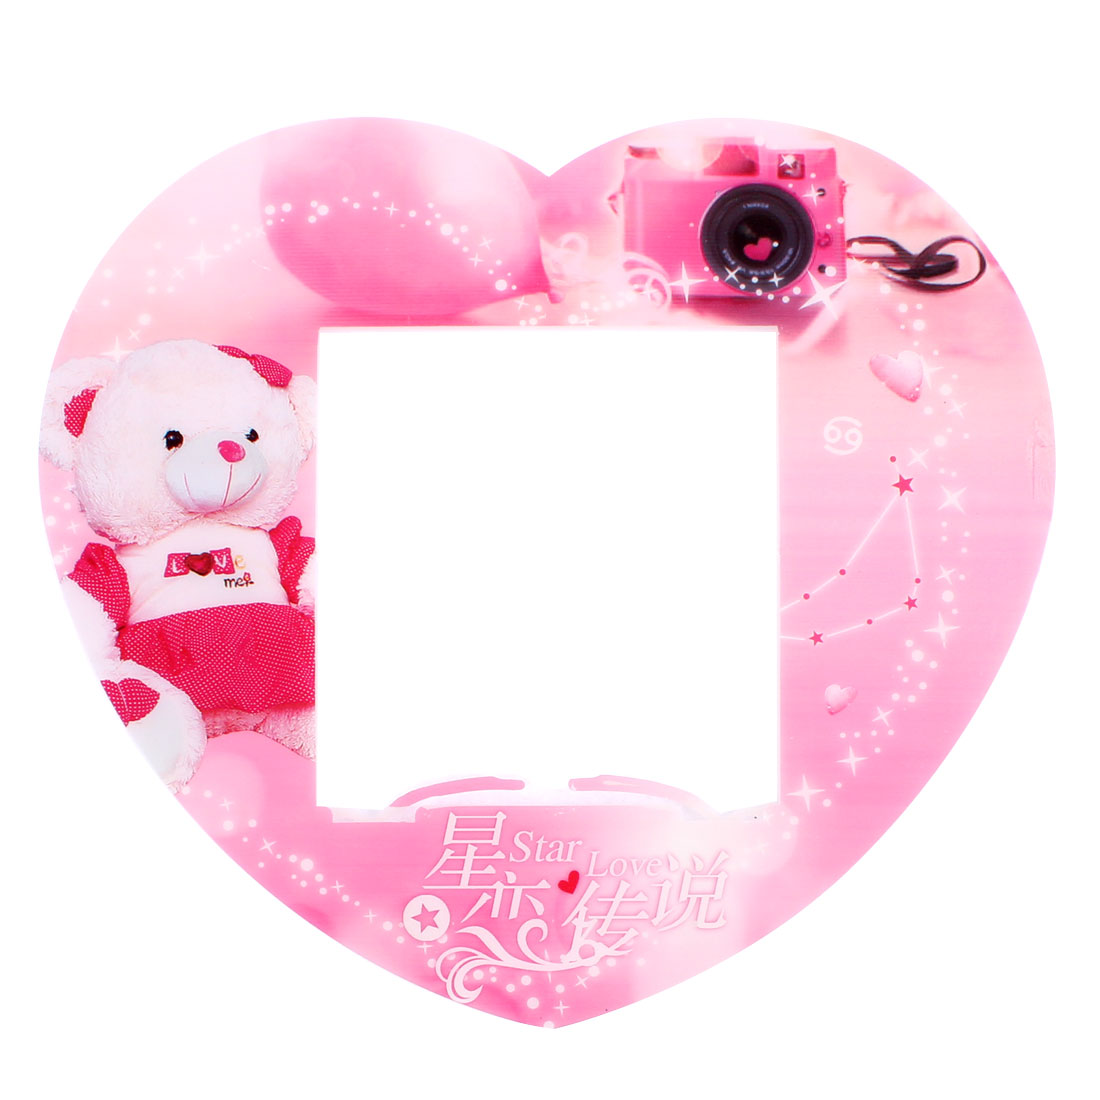 Heart Shaped Plastic Switch Stickers Cover Socket Decoration Pink